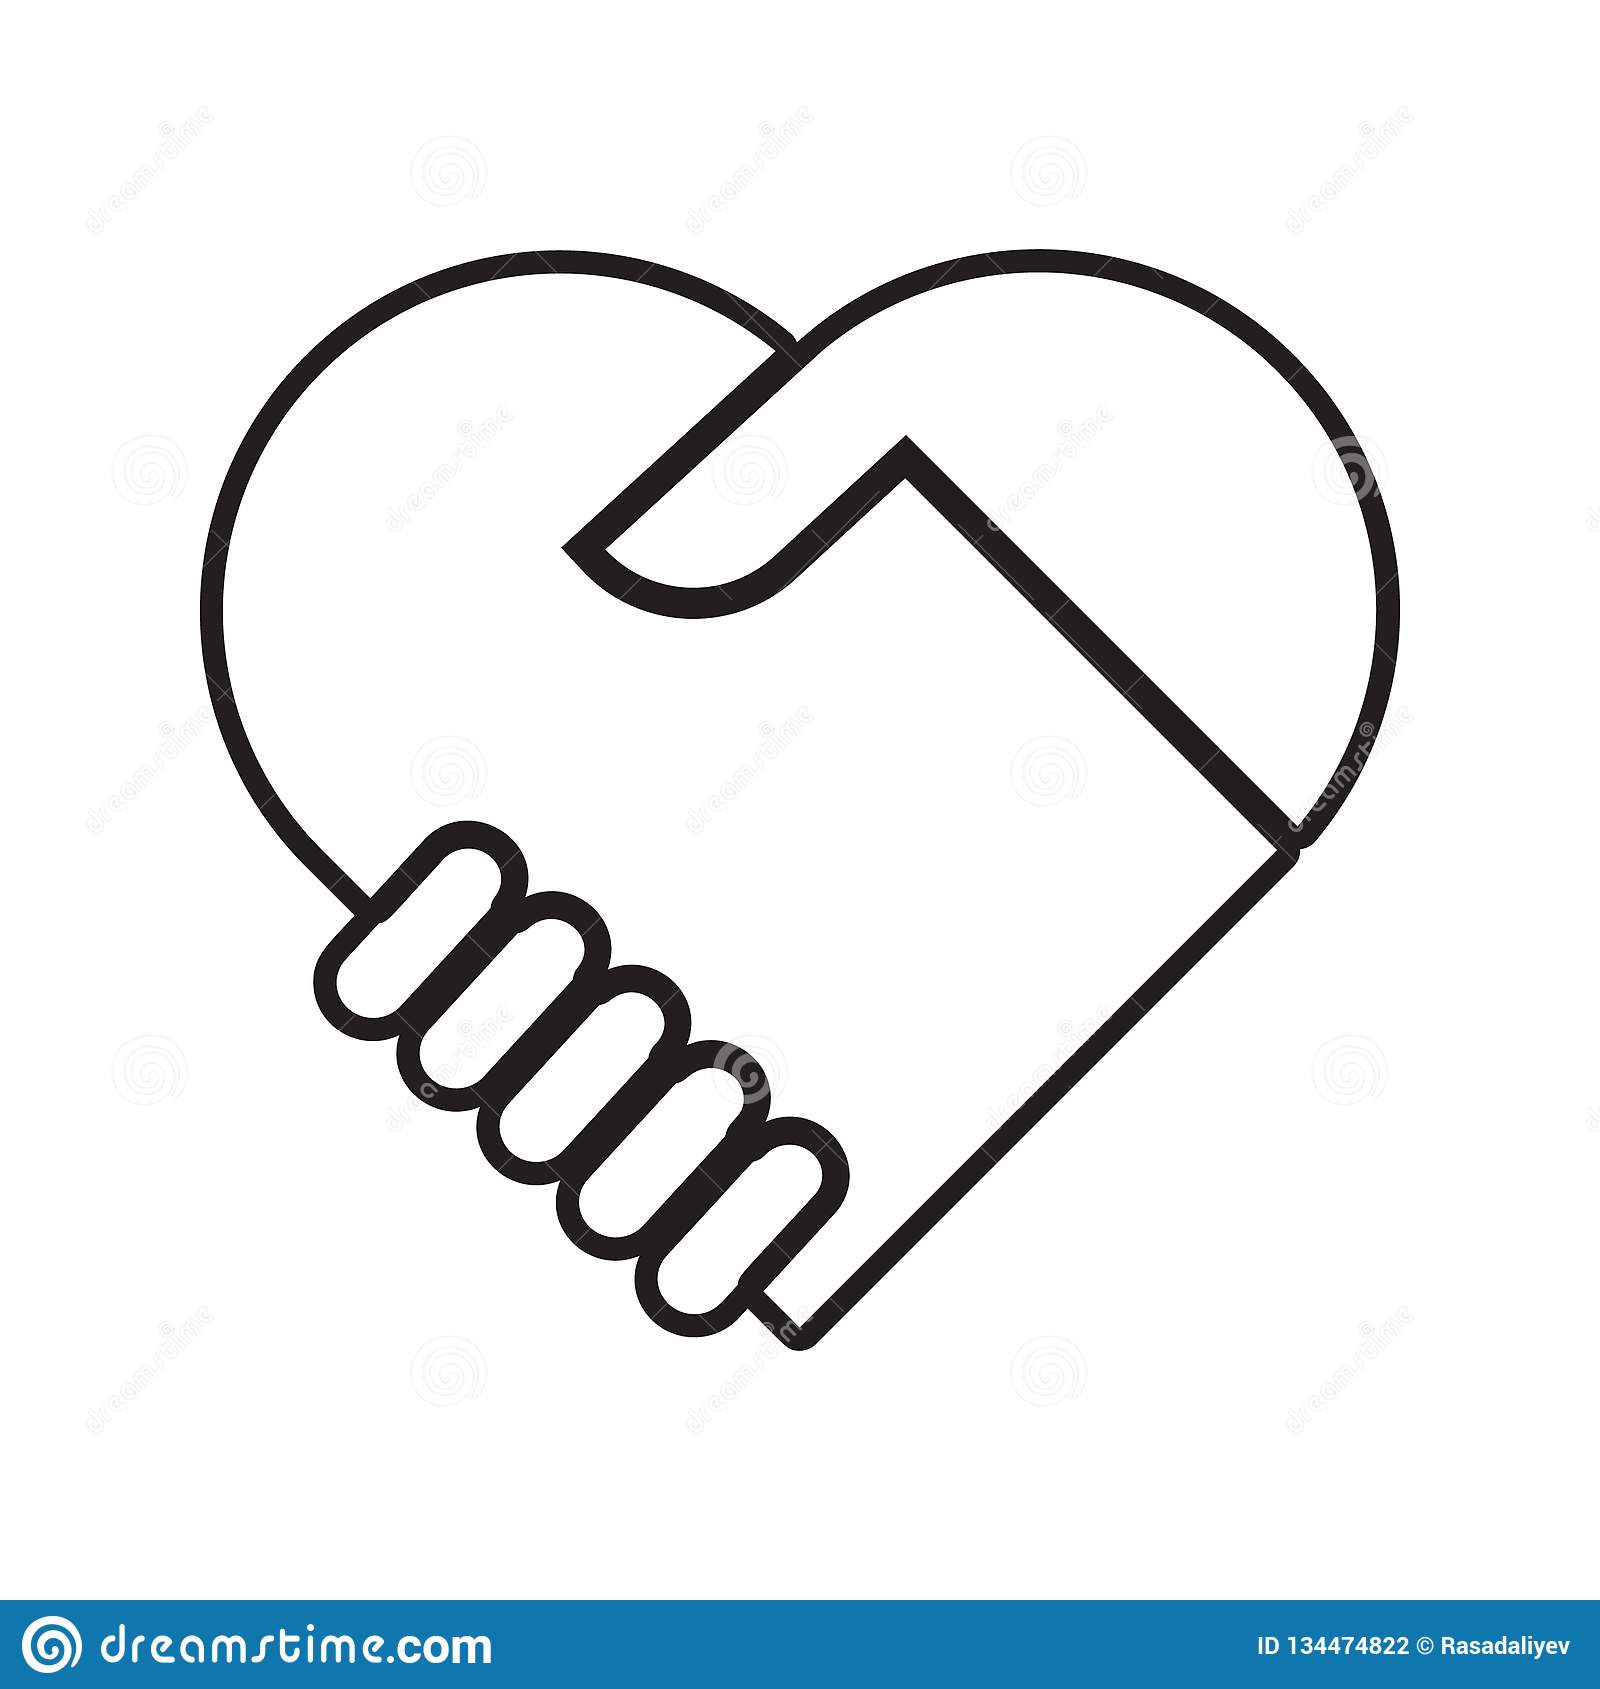 Handshake with love icon. Element of Conversation and Friendship for mobile concept and web apps icon. Thin line icon for website. Design and development, app vector illustration